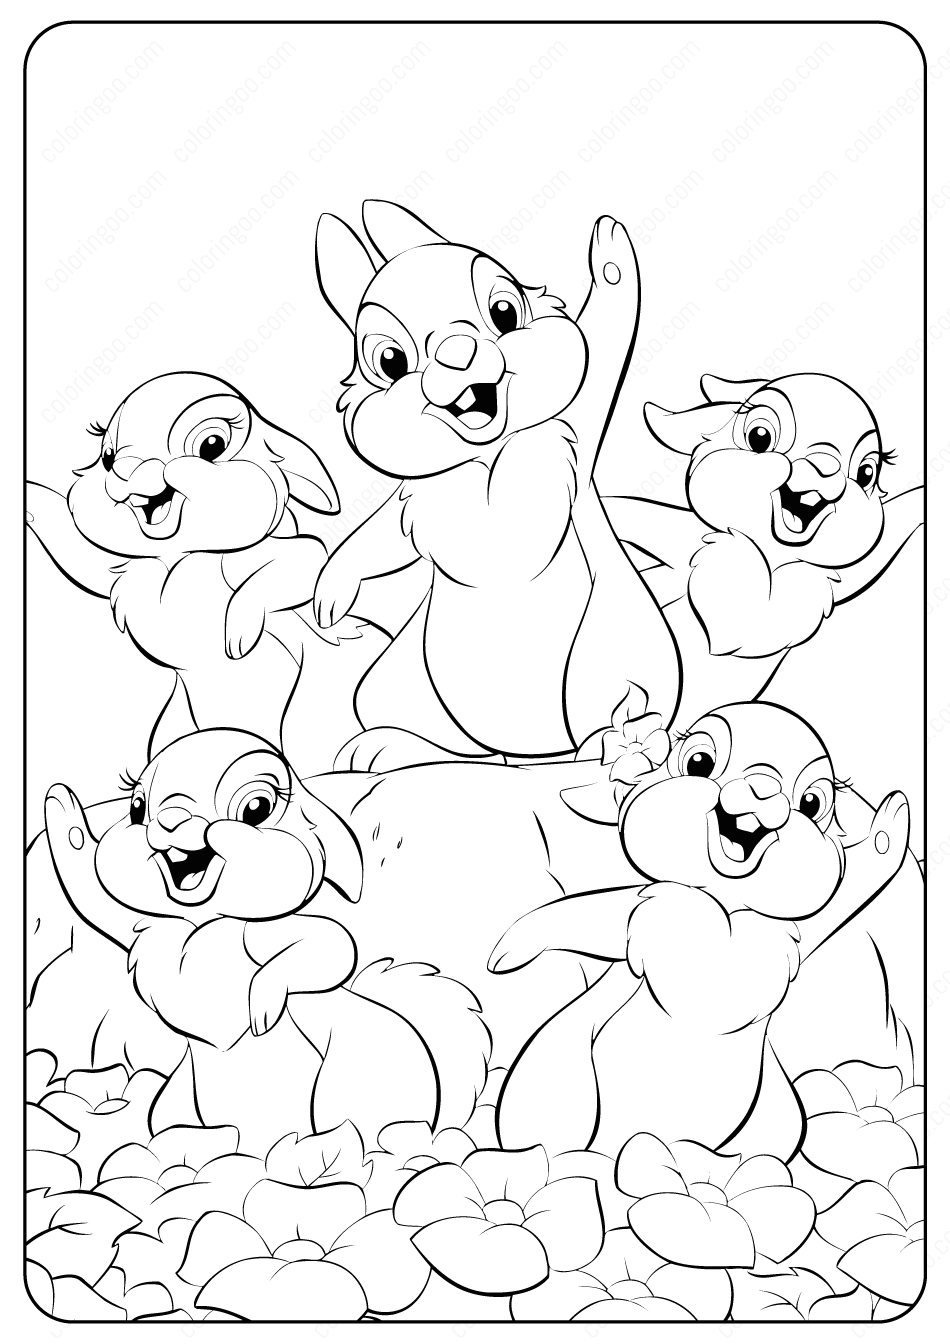 Printable Disney Bambi Thumper Coloring Pages